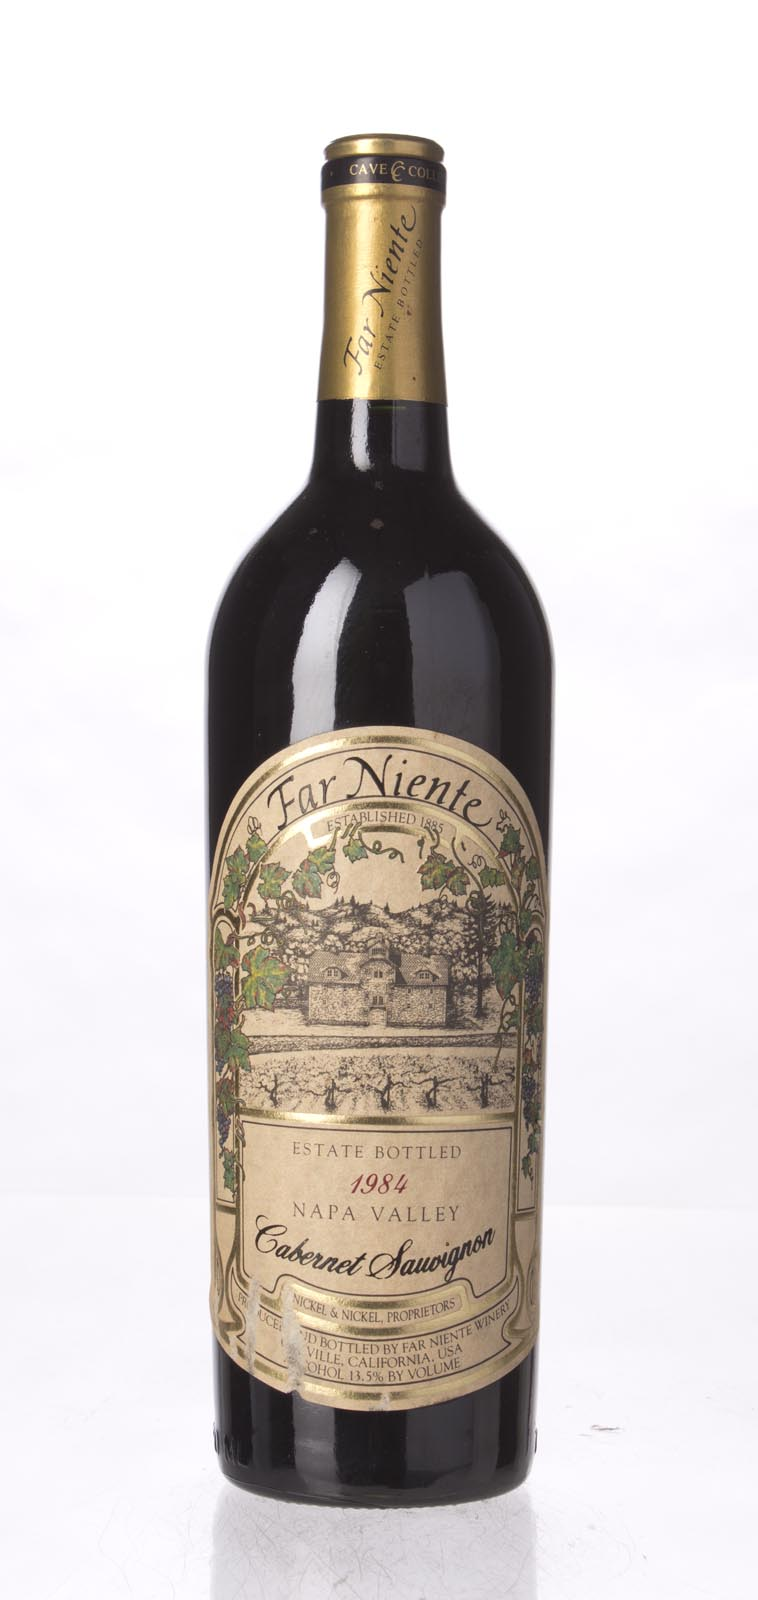 Far Niente Cabernet Sauvignon Cave Collection 1984, 750mL () from The BPW - Merchants of rare and fine wines.